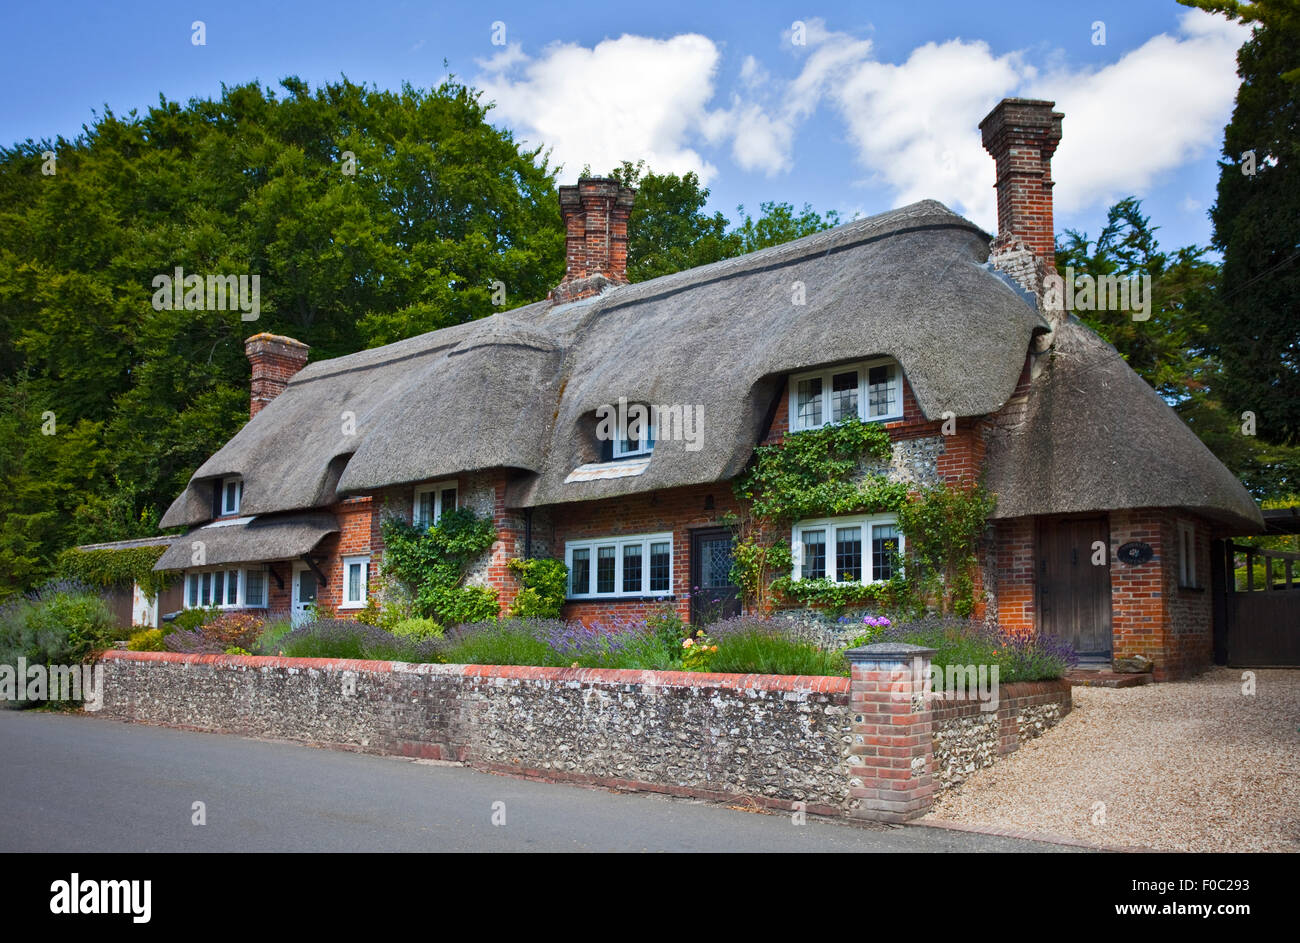 Thatched Cottages, Crawley, Hampshire, England - Stock Image